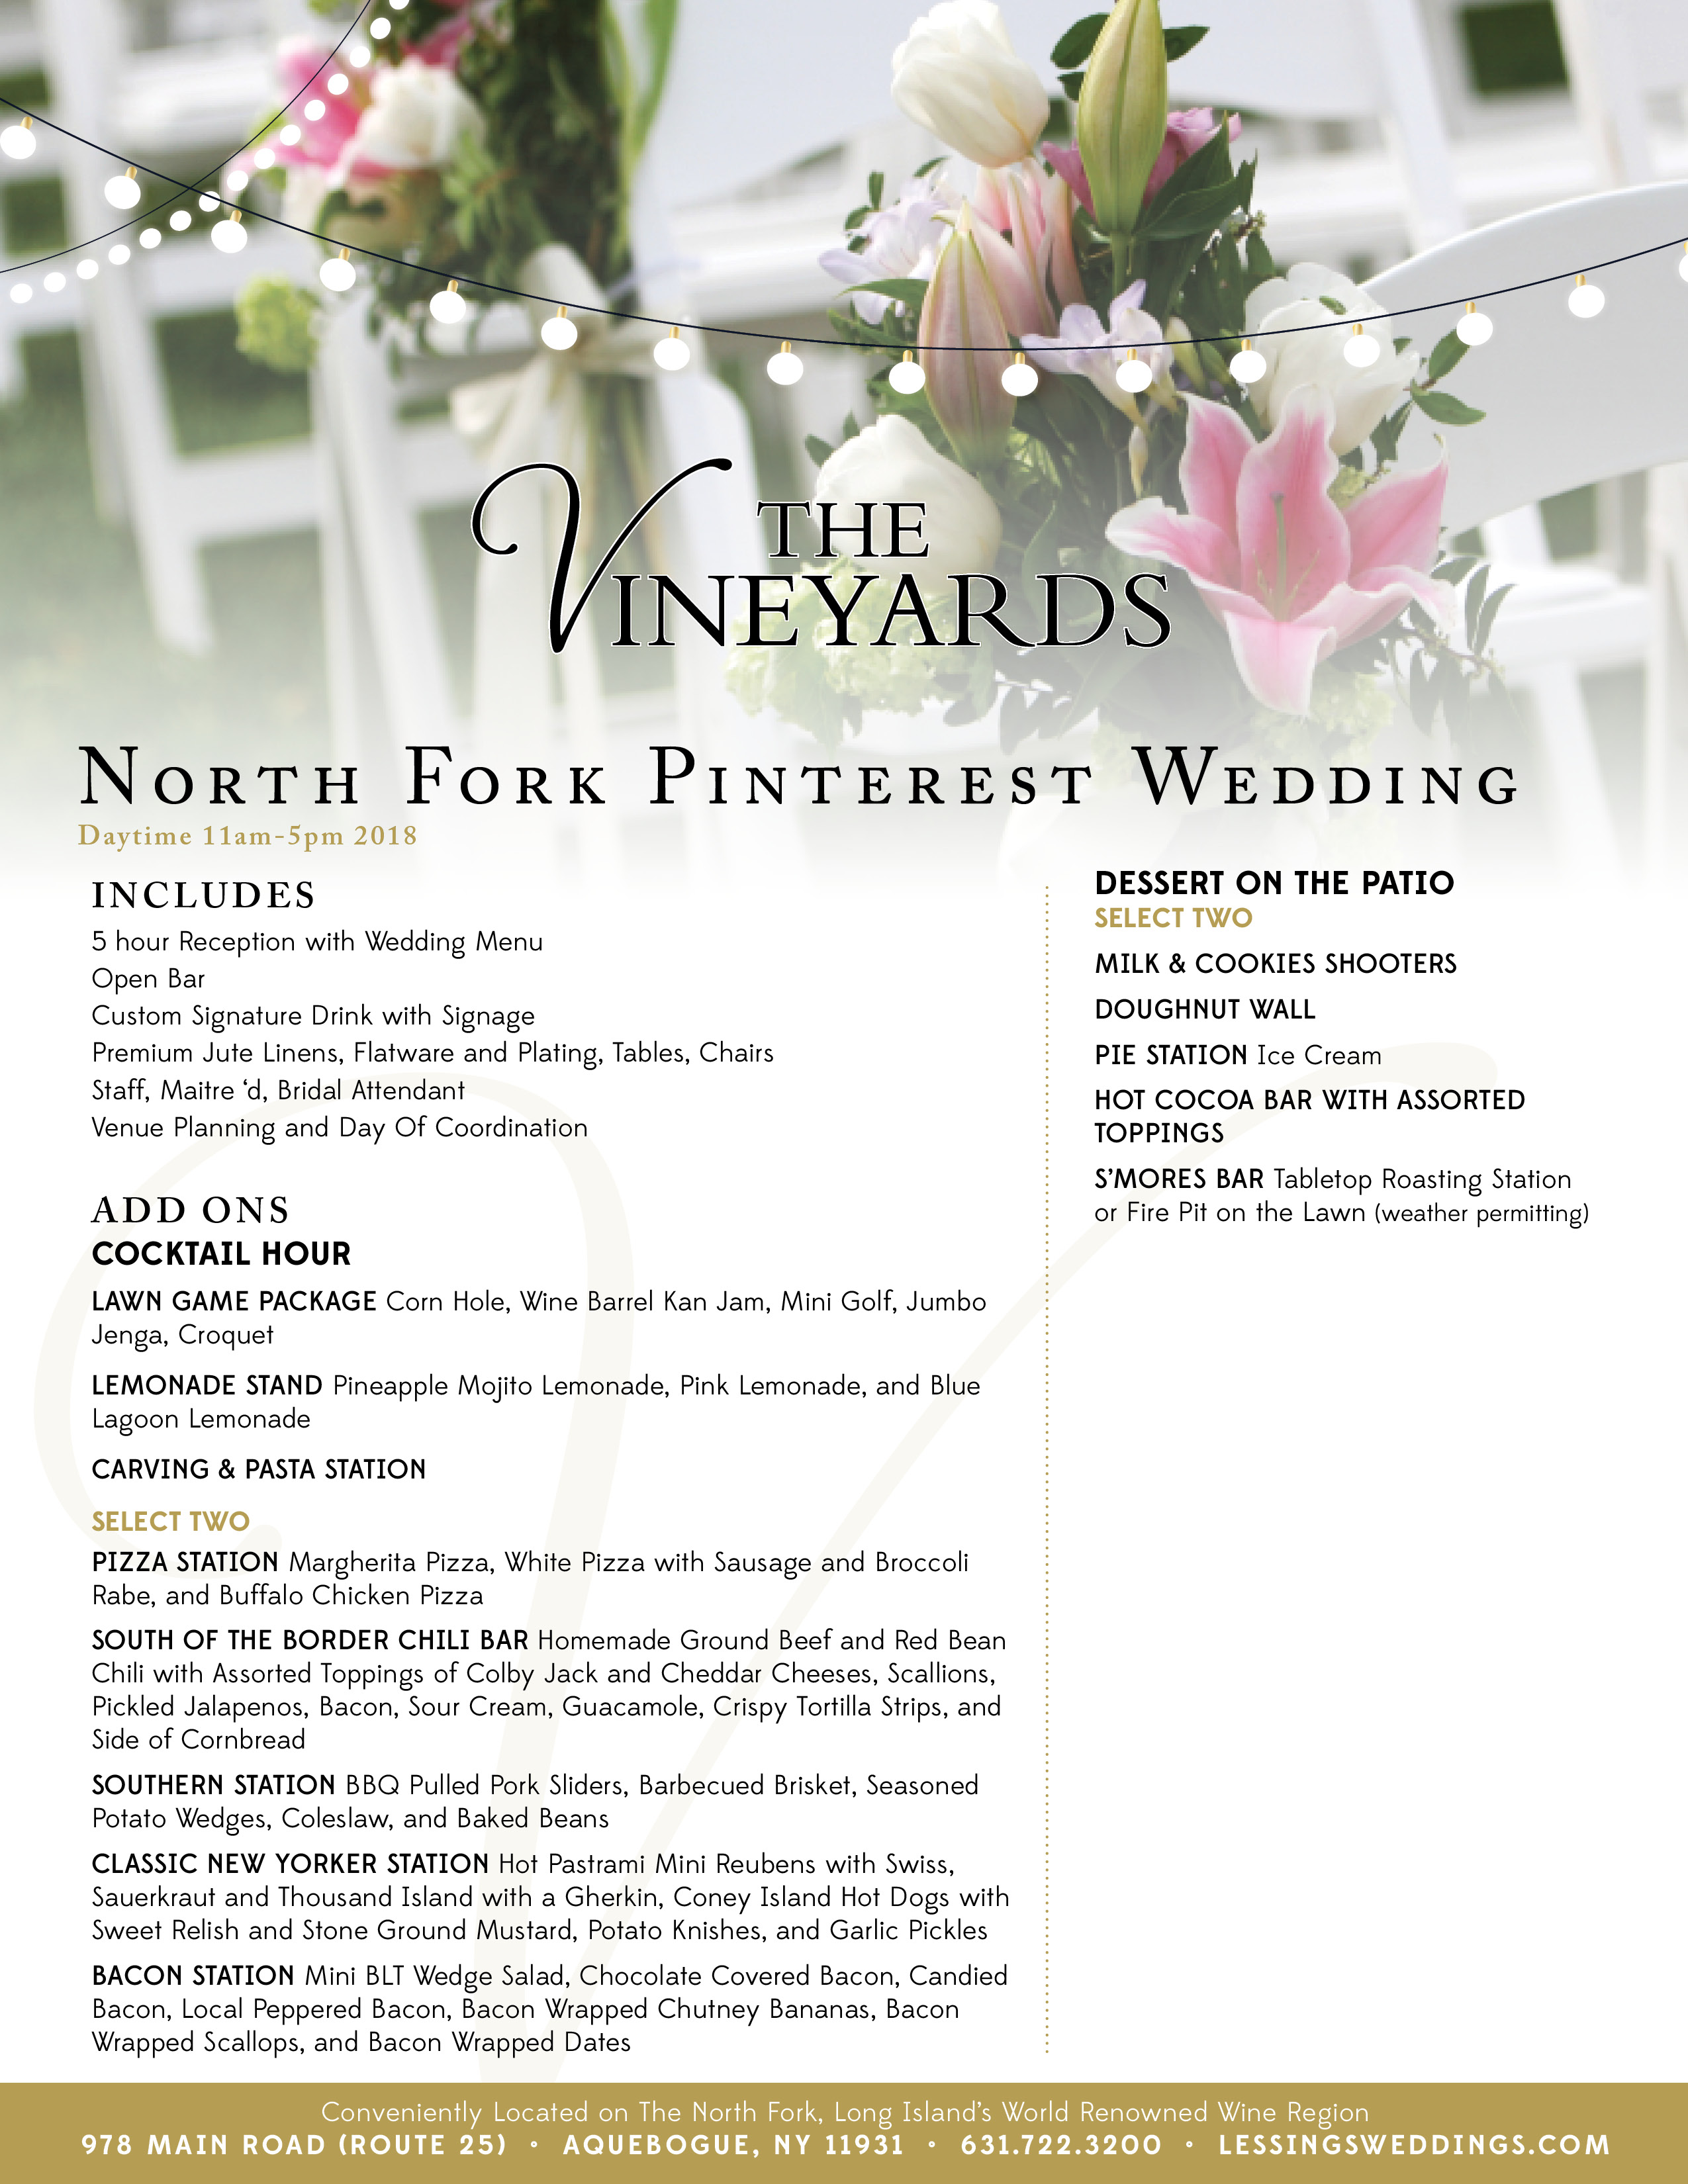 North Fork Pinterest Wedding